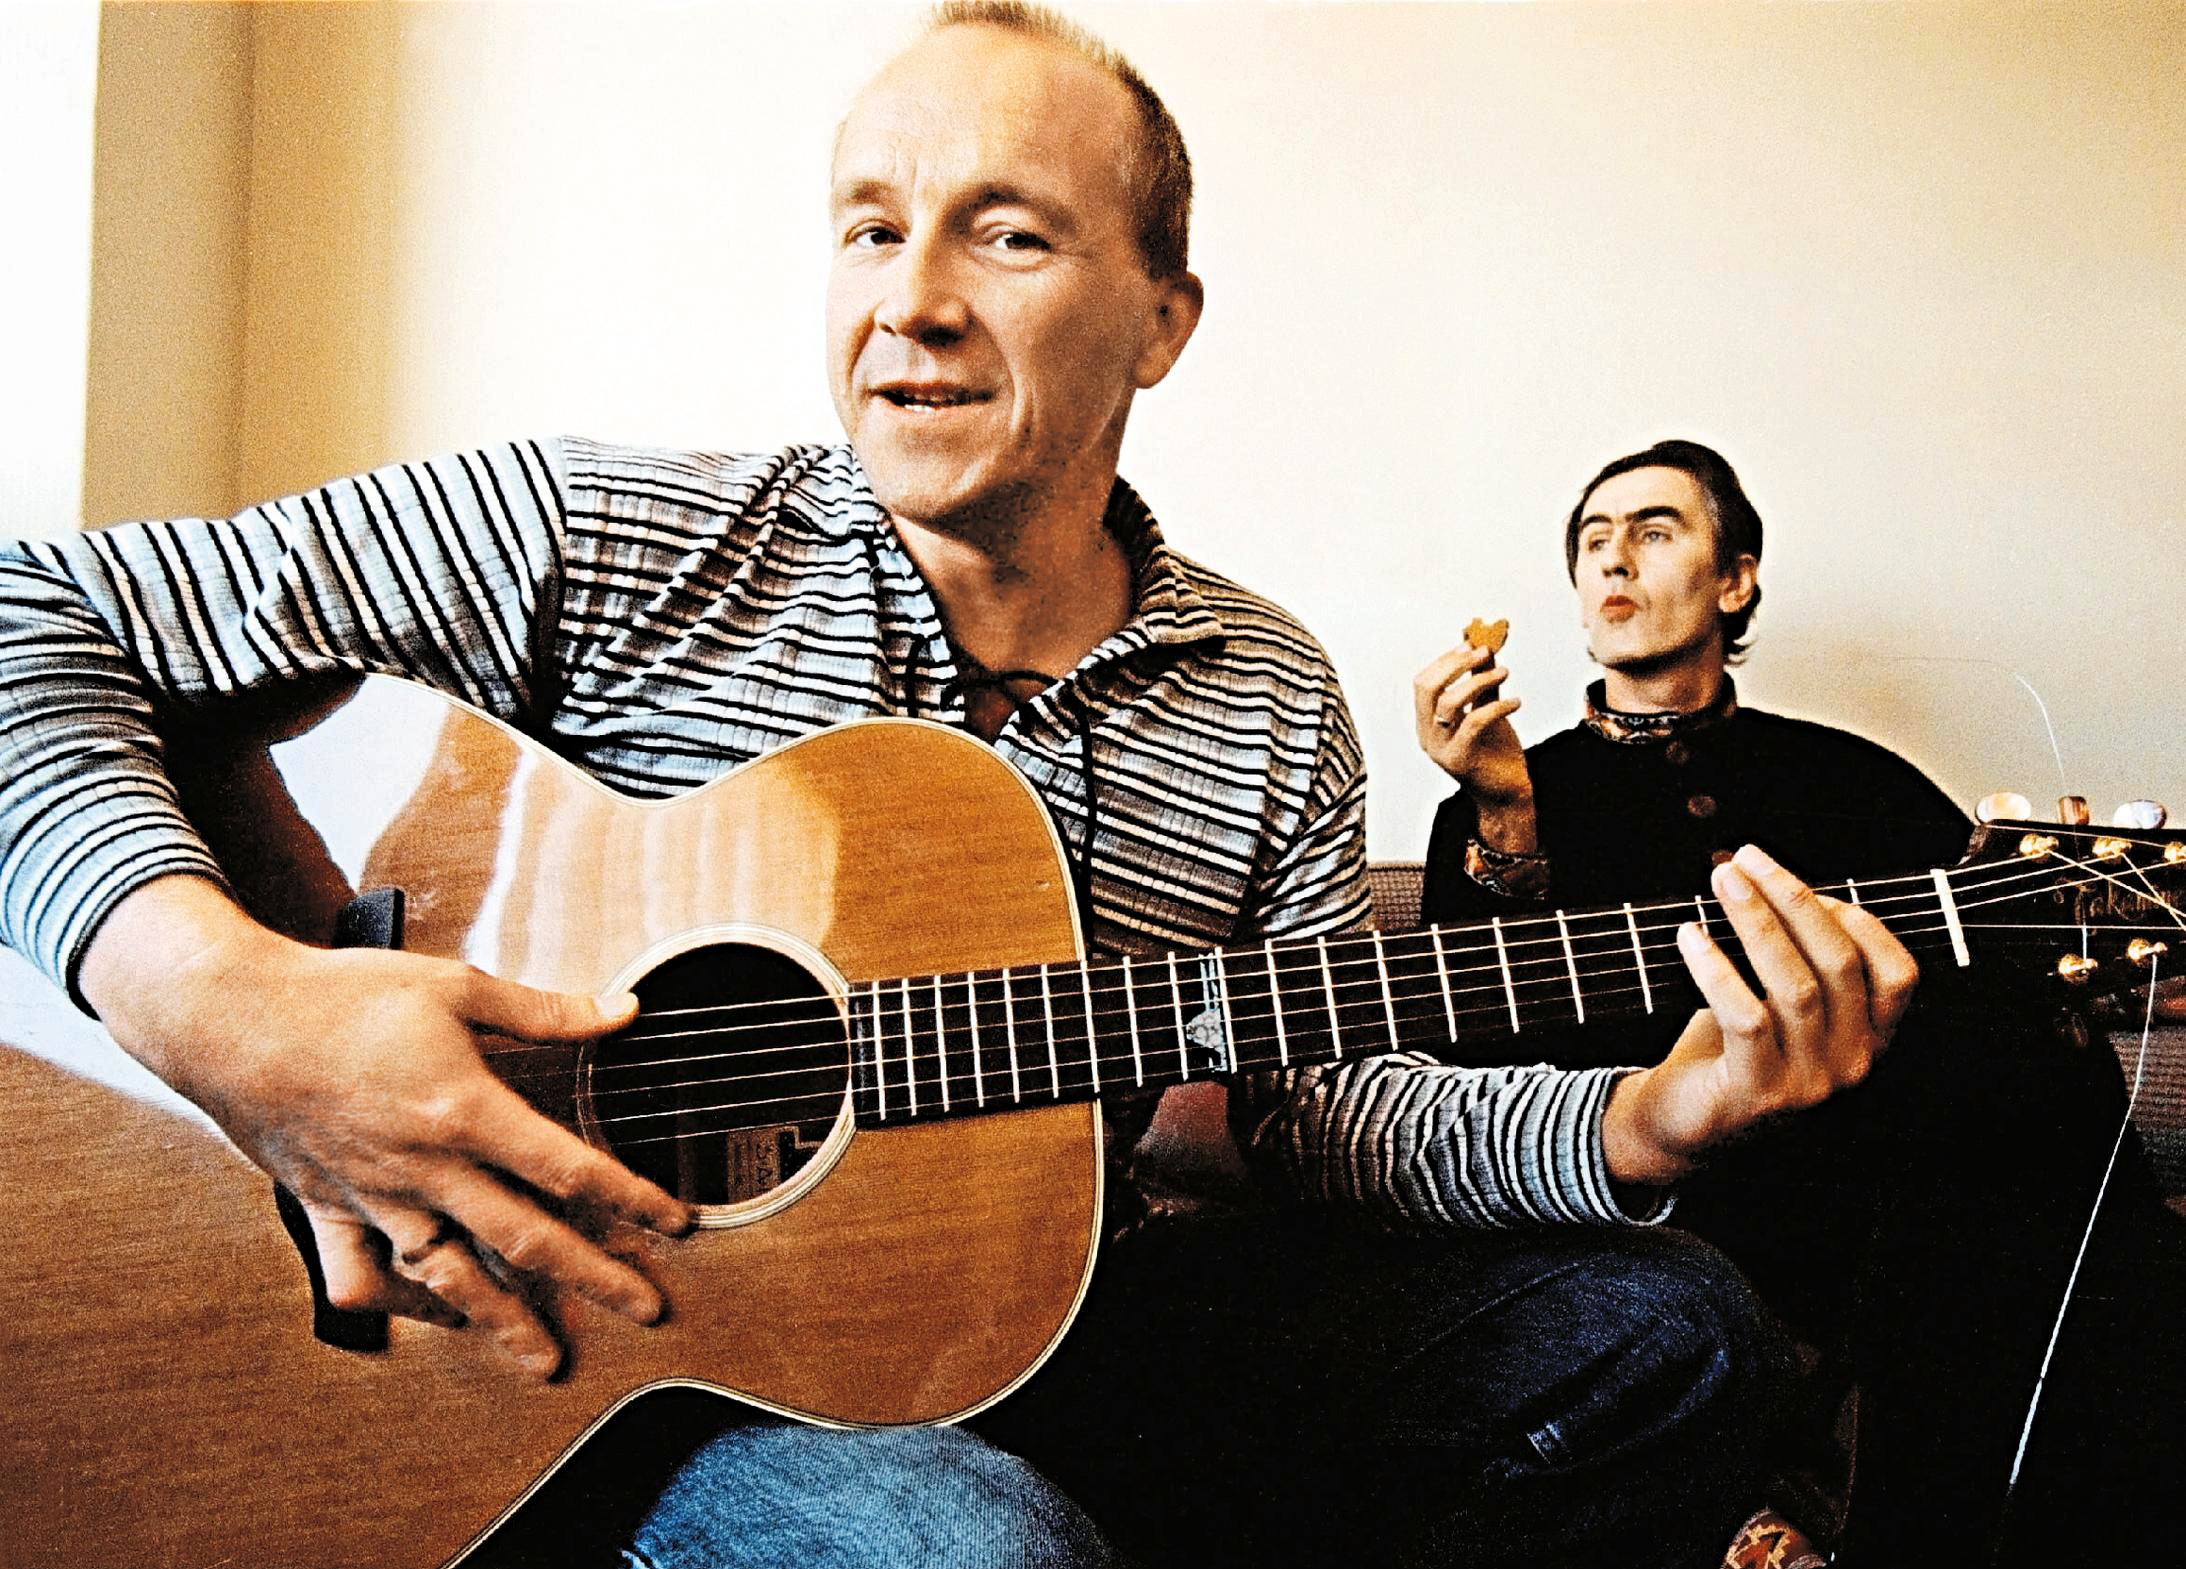 (AUSTRALIA & NEW ZEALAND OUT) Grant McLennan and Robert Forster of The Go-Betweens, 15 September 2000. SMH Picture by EDW